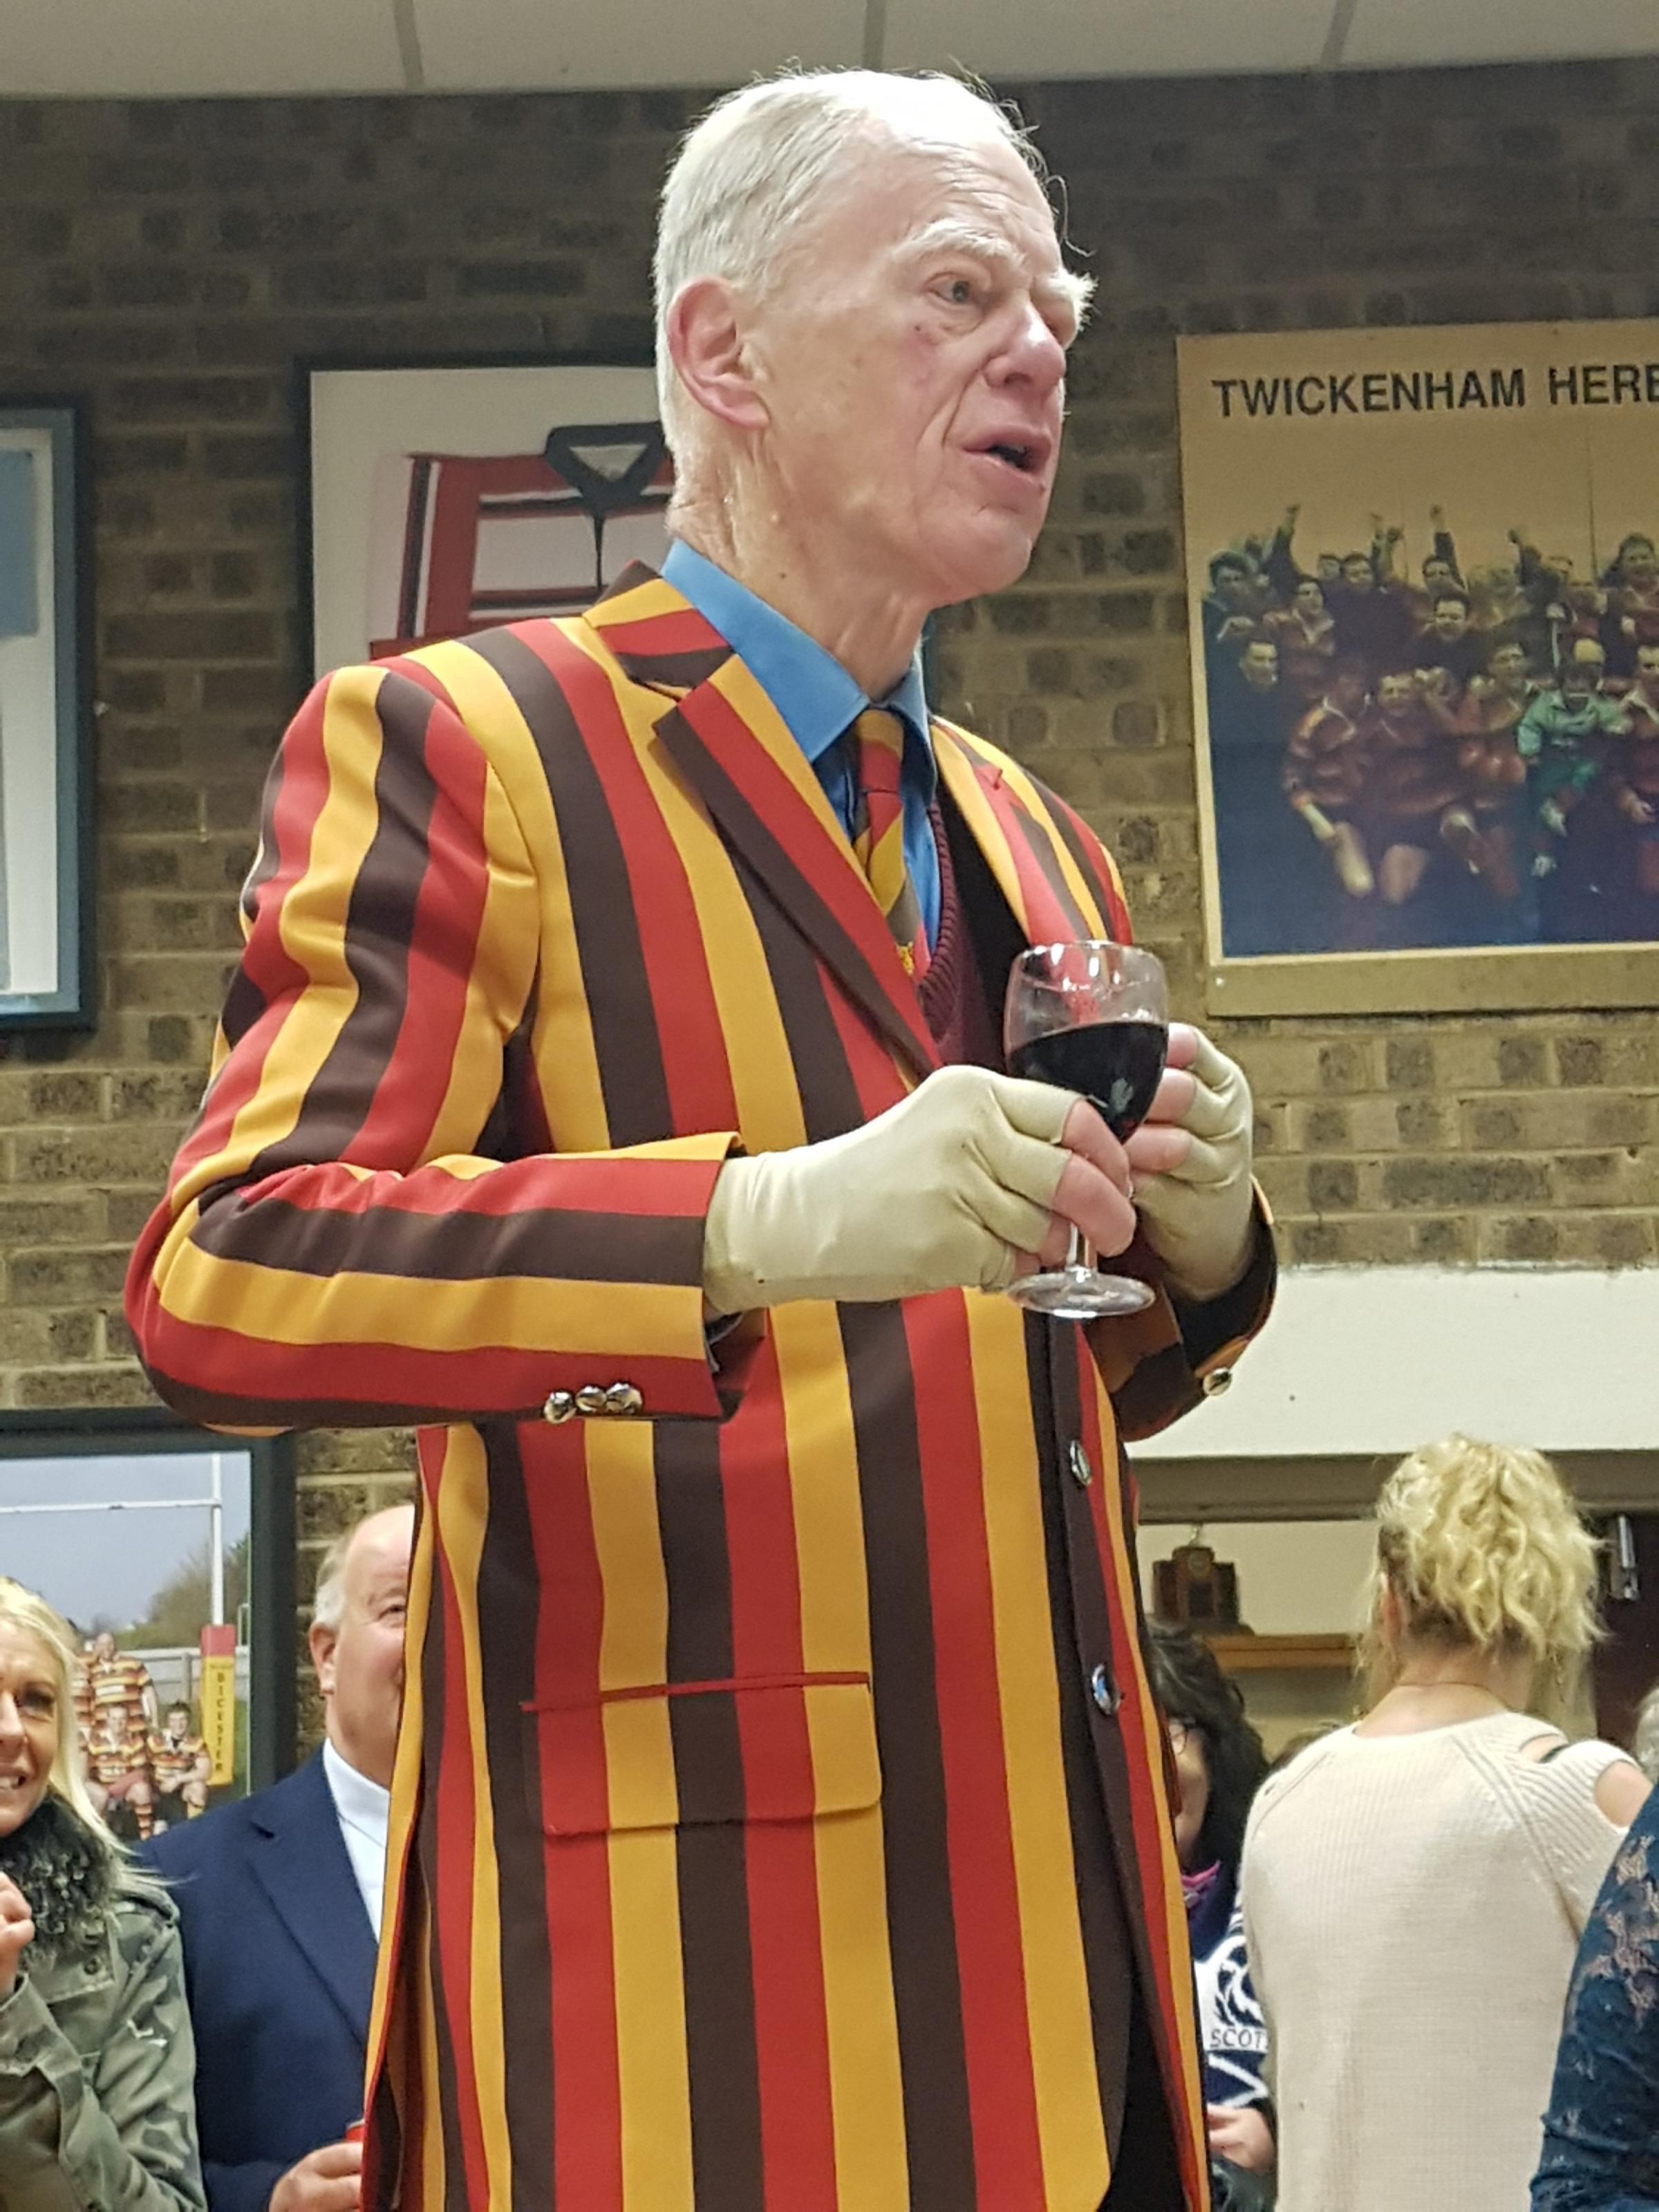 HONOUR: Paul Chrisp wears his new club blazer while giving a speech last Saturday